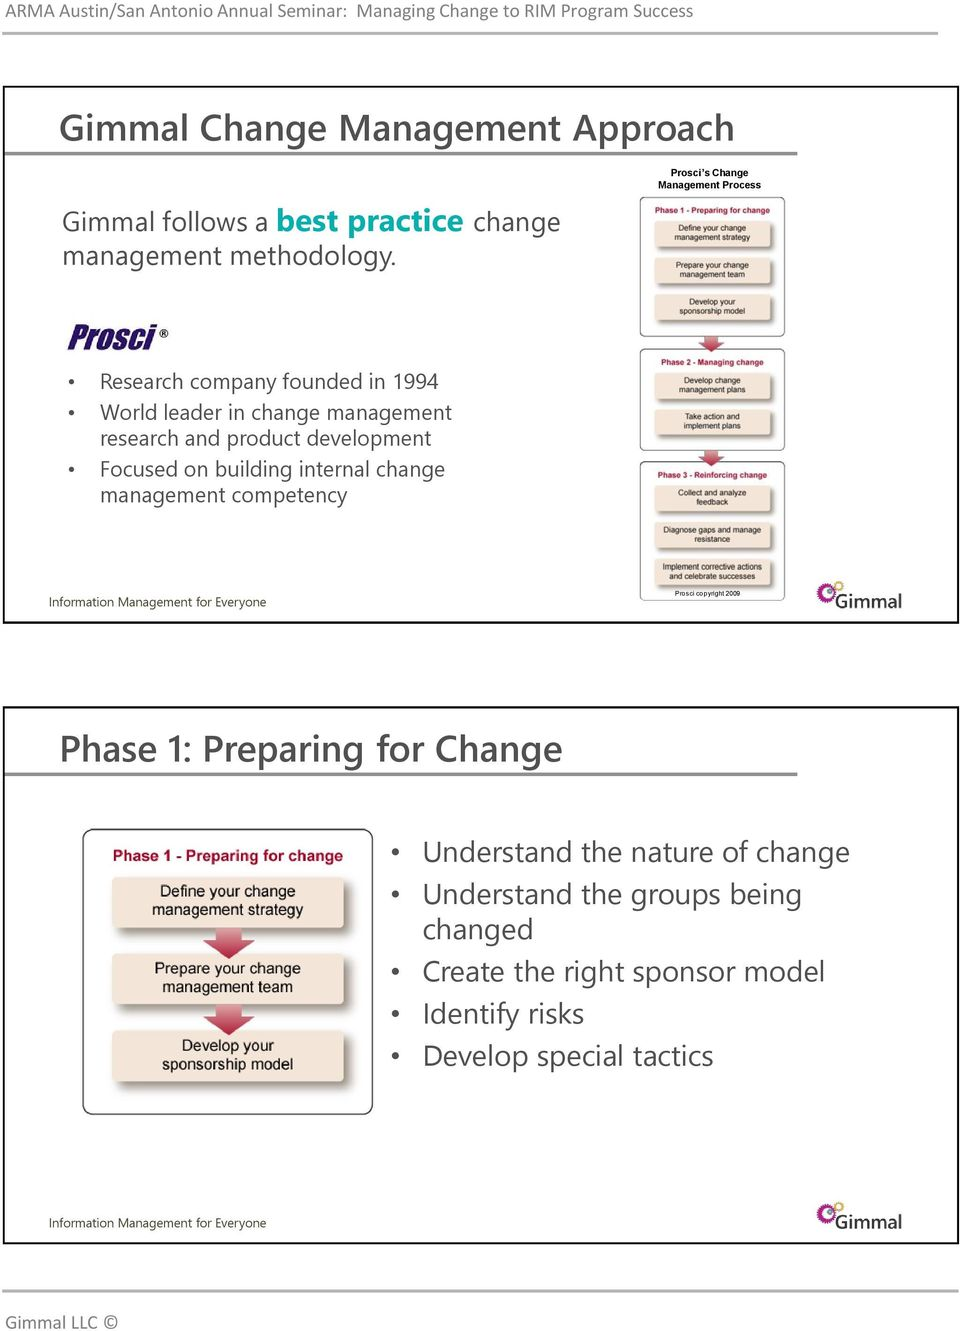 product development Focused on building internal change management competency Prosci copyright 2009 Phase 1: Preparing